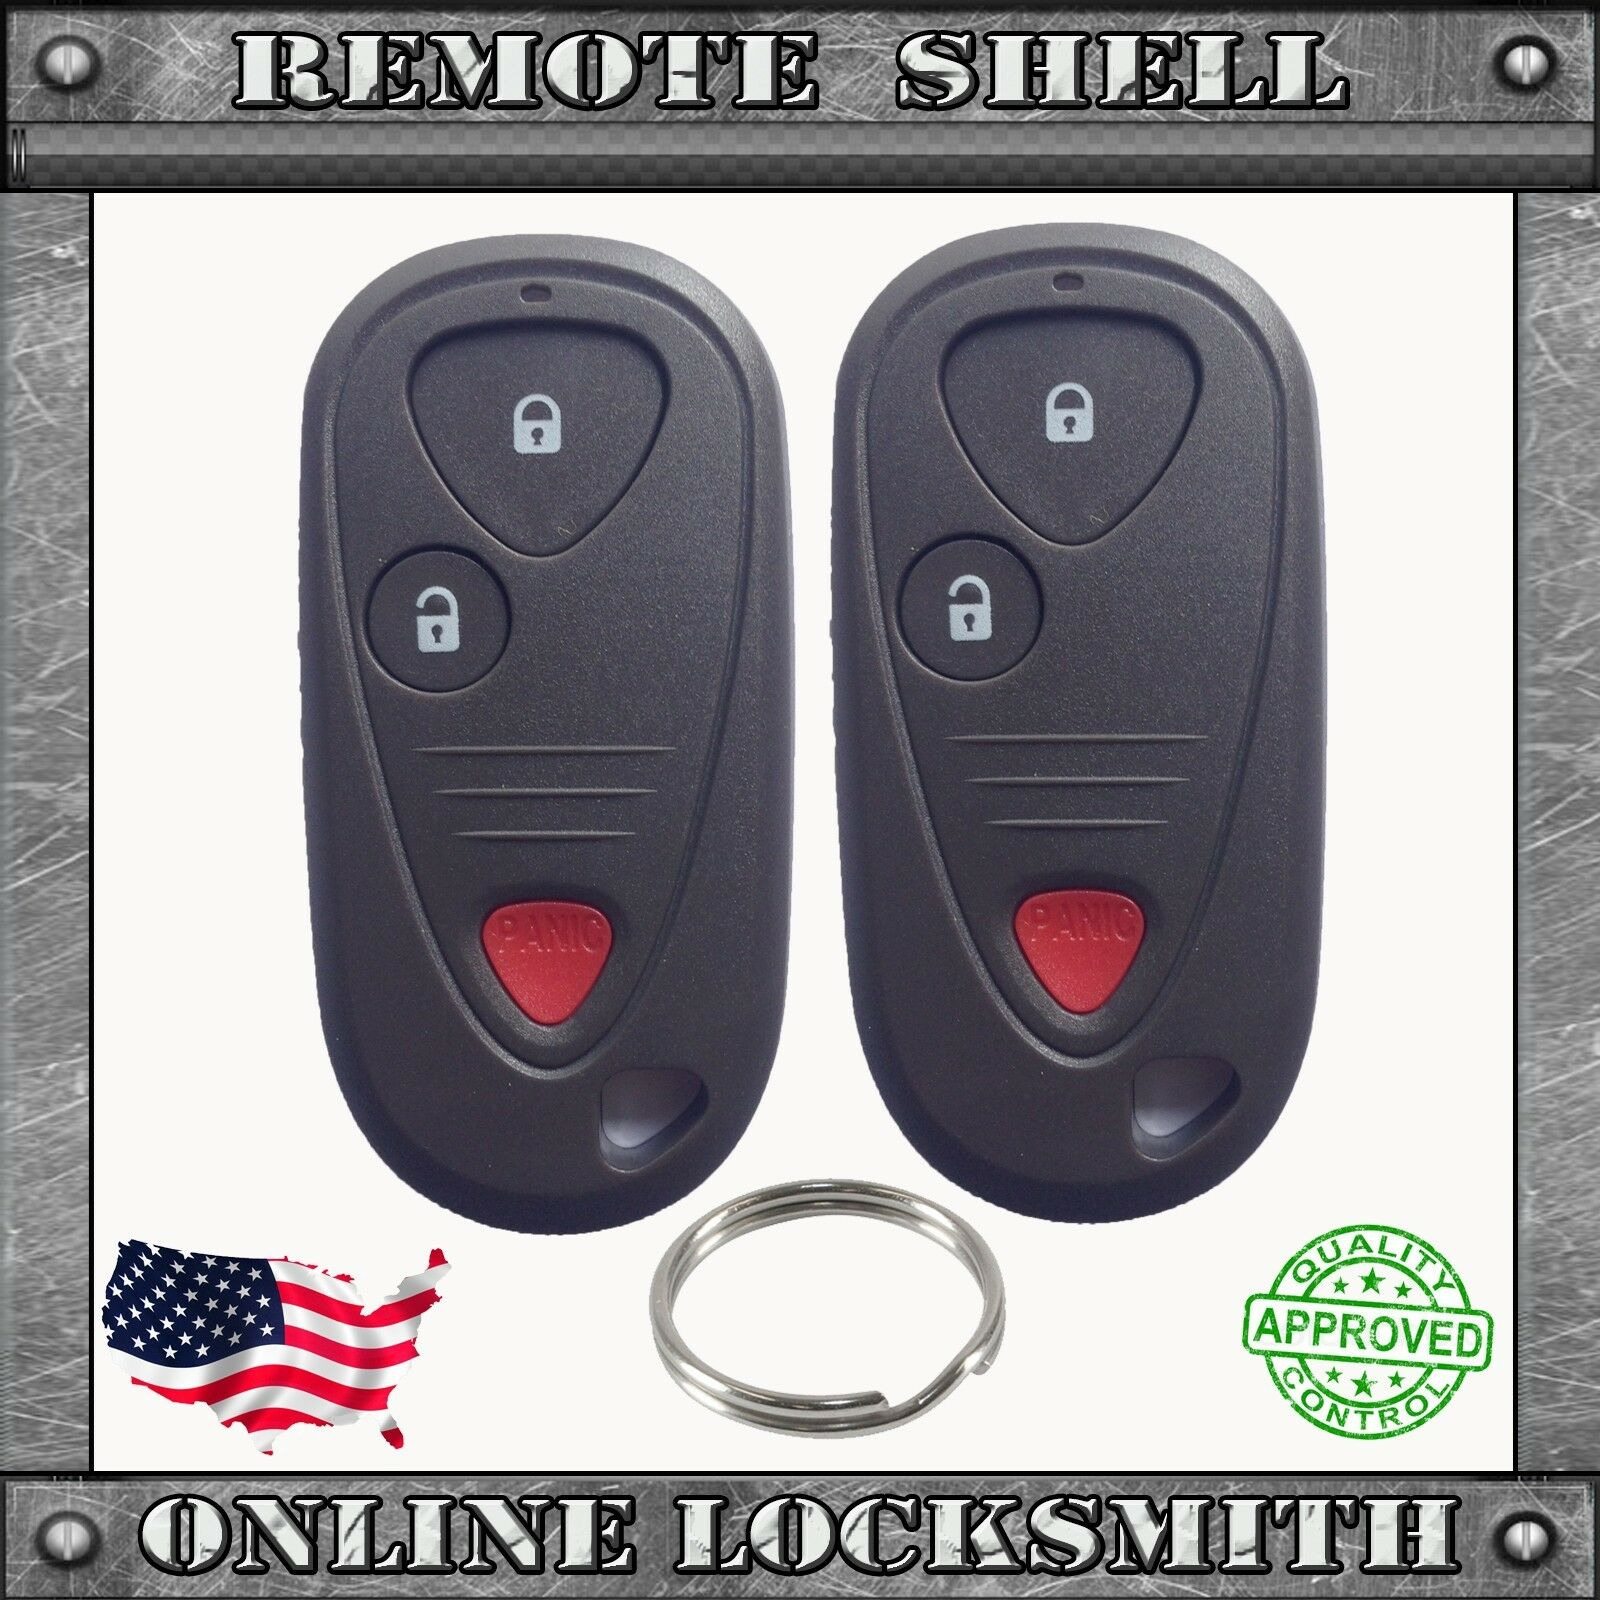 2 New Replacement Keyless Entry Remote Shell Case Fob For